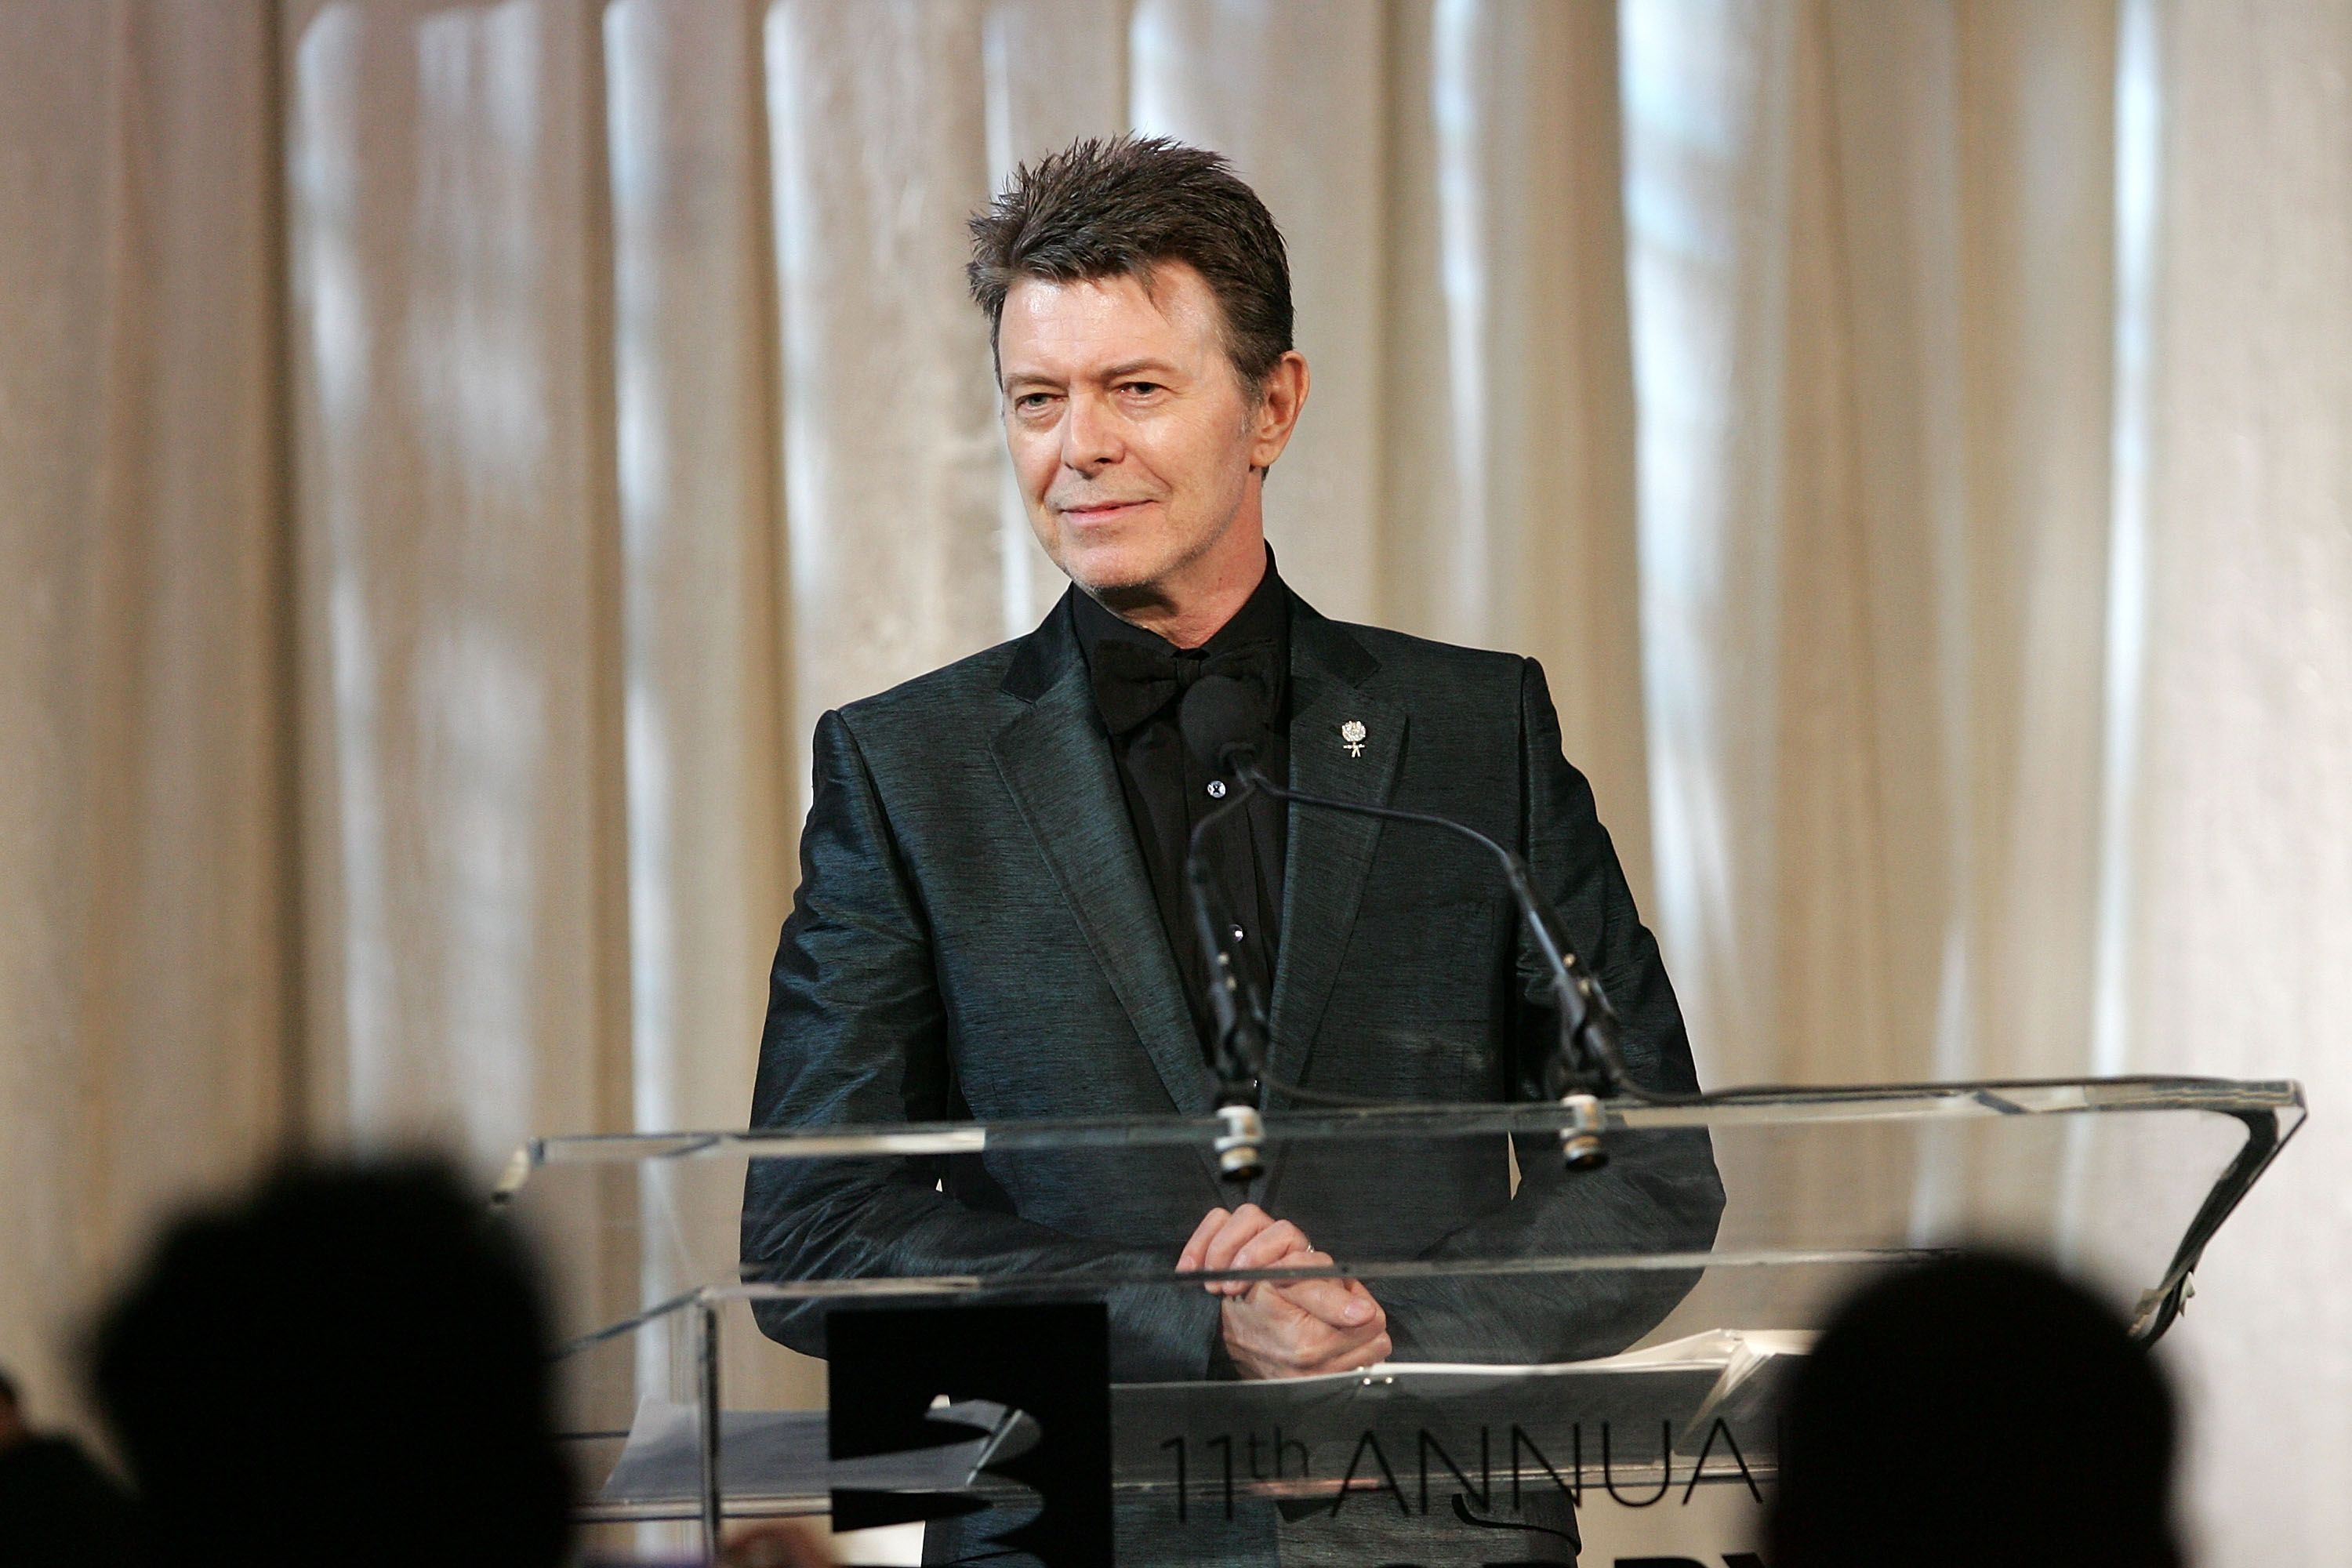 David Bowie accepting the Webby Lifetime Achievement award on June 5, 2007 in New York City | Photo: Getty Images